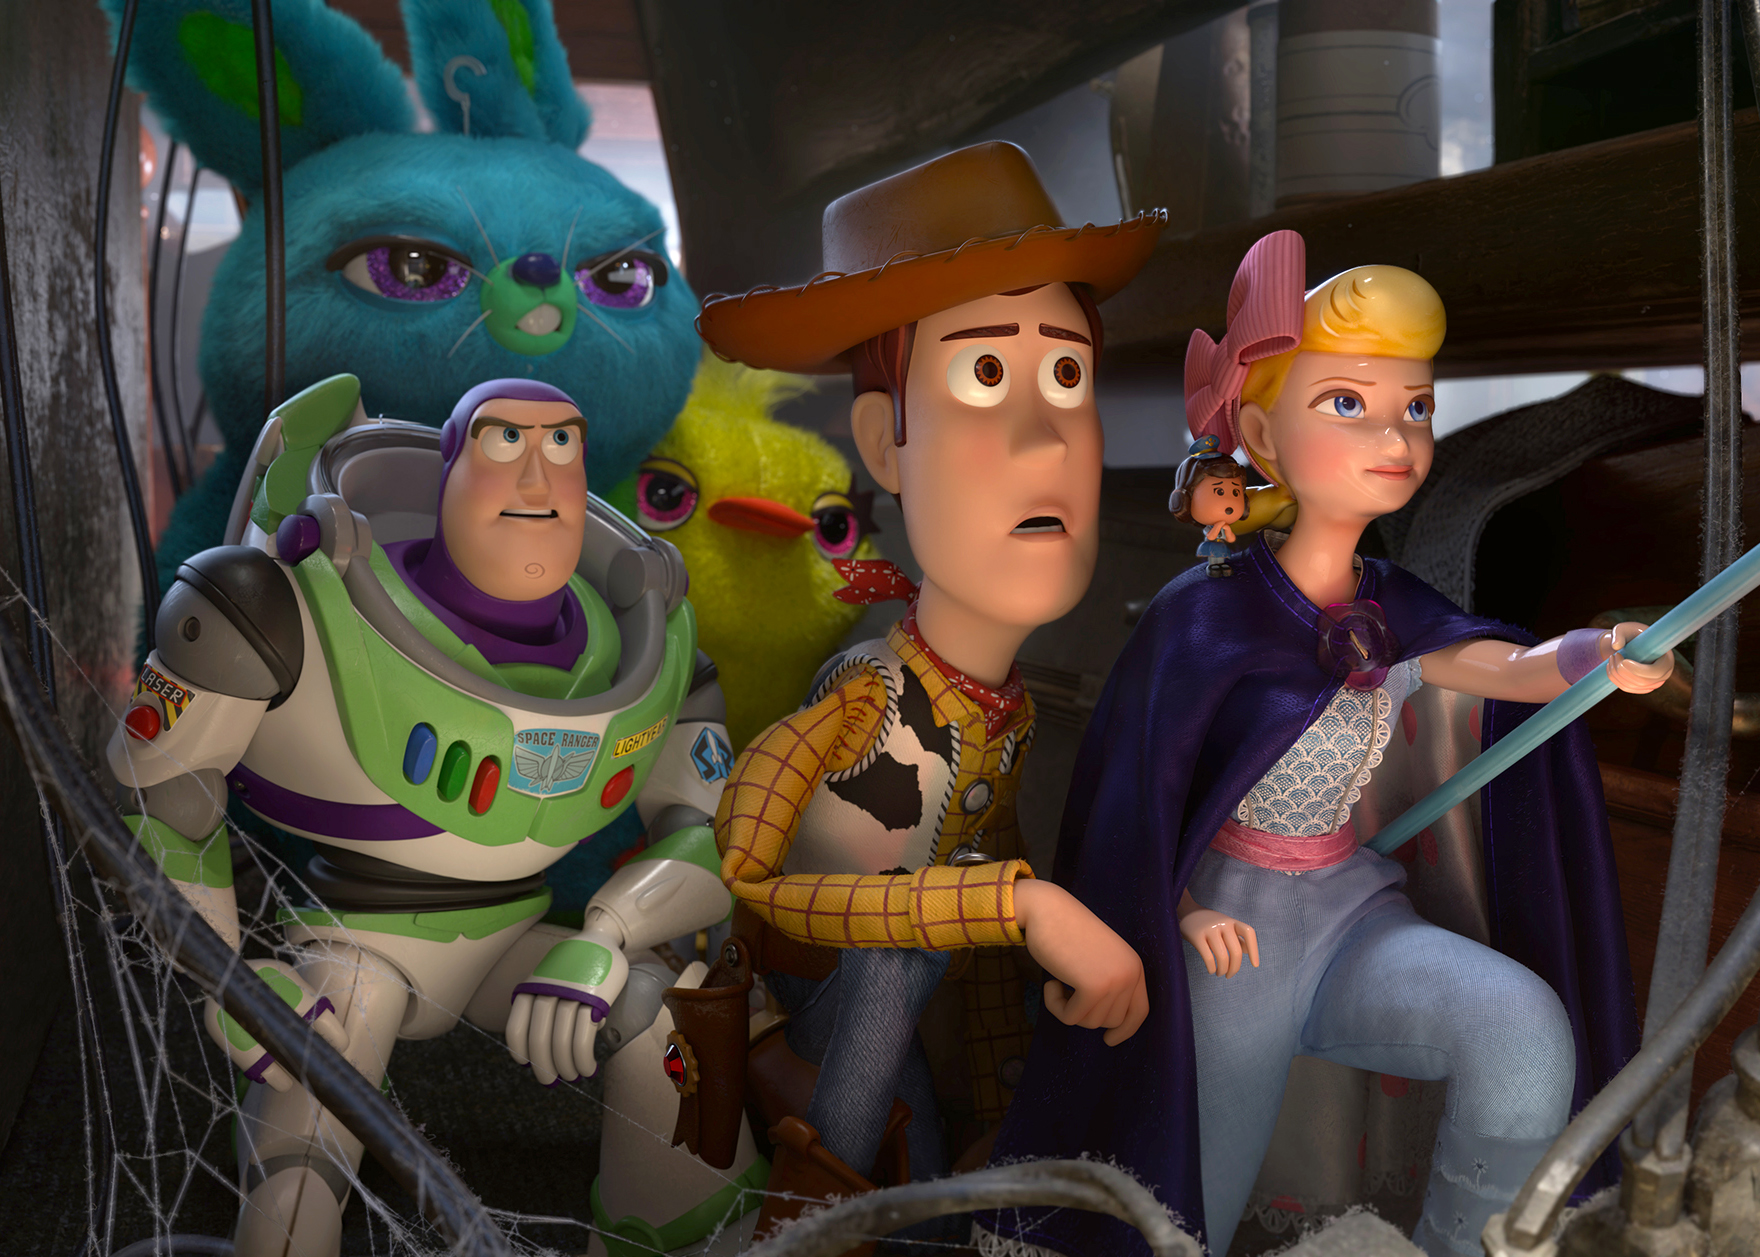 Animated characters Buzz Lightyear (voiced by Tim Allen), Woody (voiced by Tom Hanks), and Bo (voiced by Annie Potts) appear in the movie